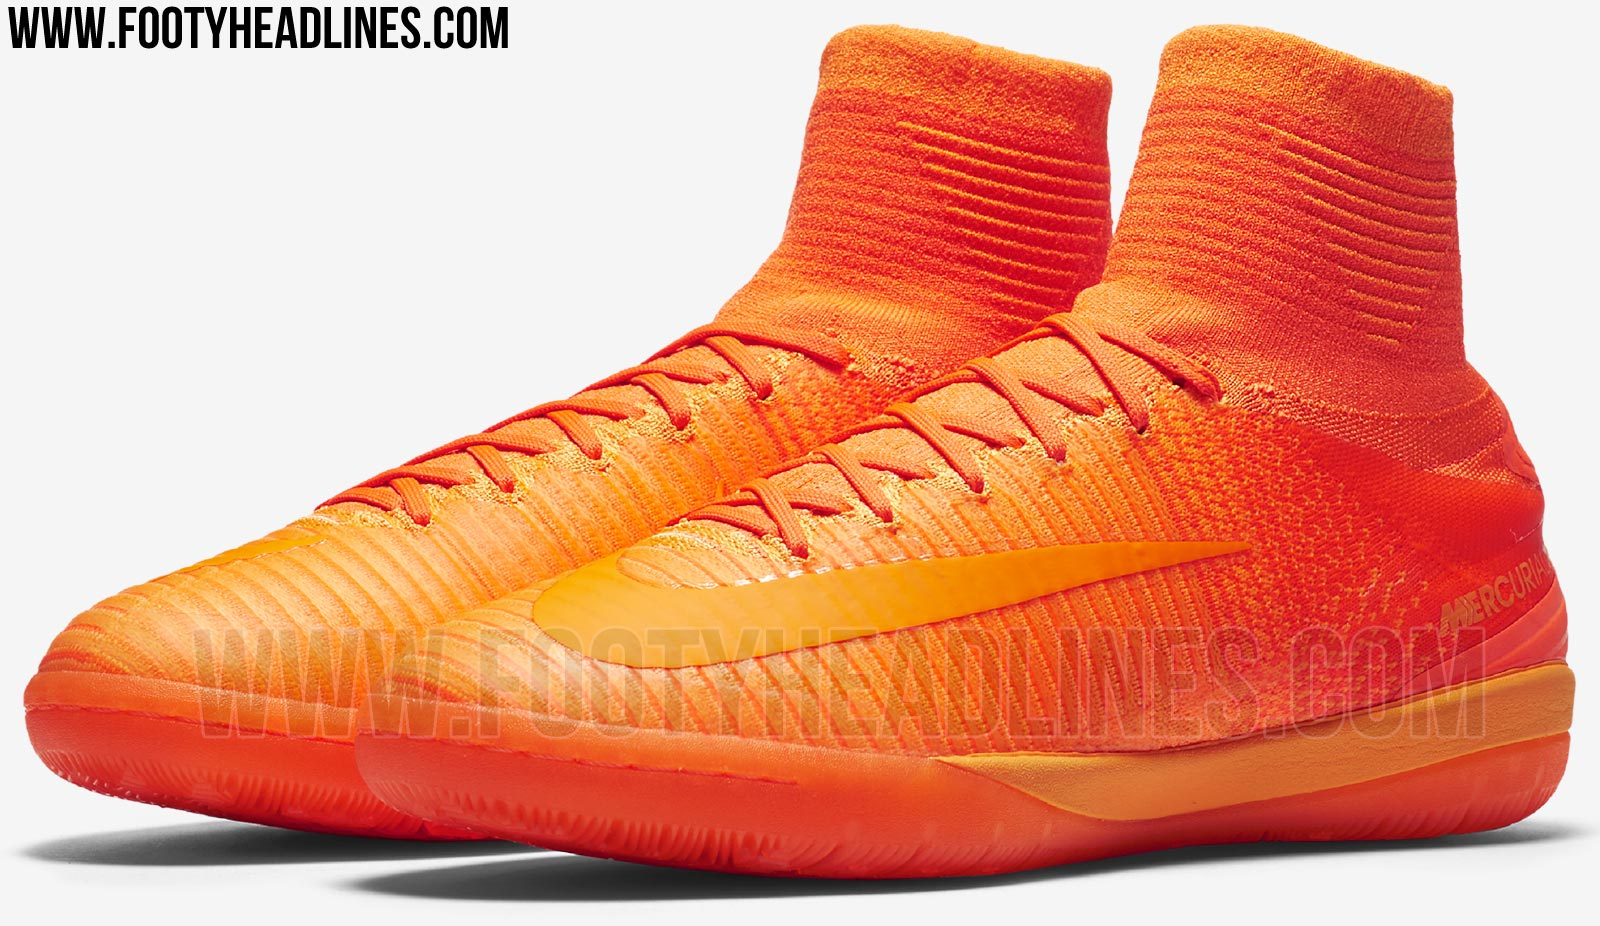 Cheap NIke MercurialX Proximo II All Orange